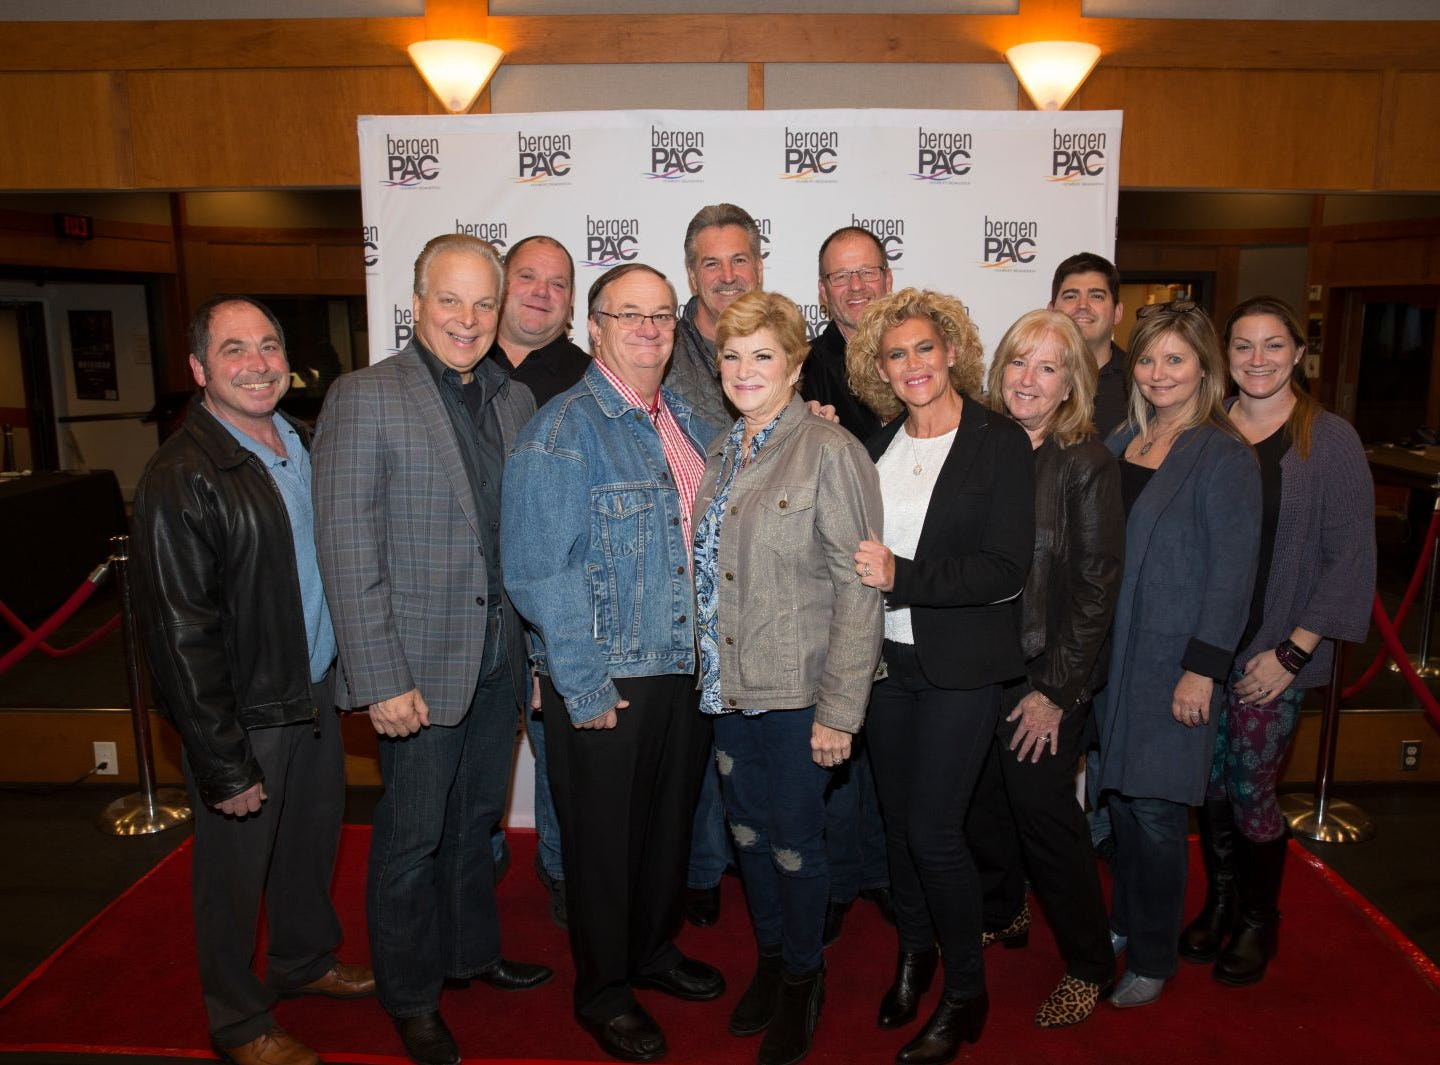 The Taylor Family. BergenPAC held its annual fall gala featuring John Fogerty in Englewood. This year's honoree was Fernando Garip, from Wilmington Trust and M&T Bank. 11/08/2018